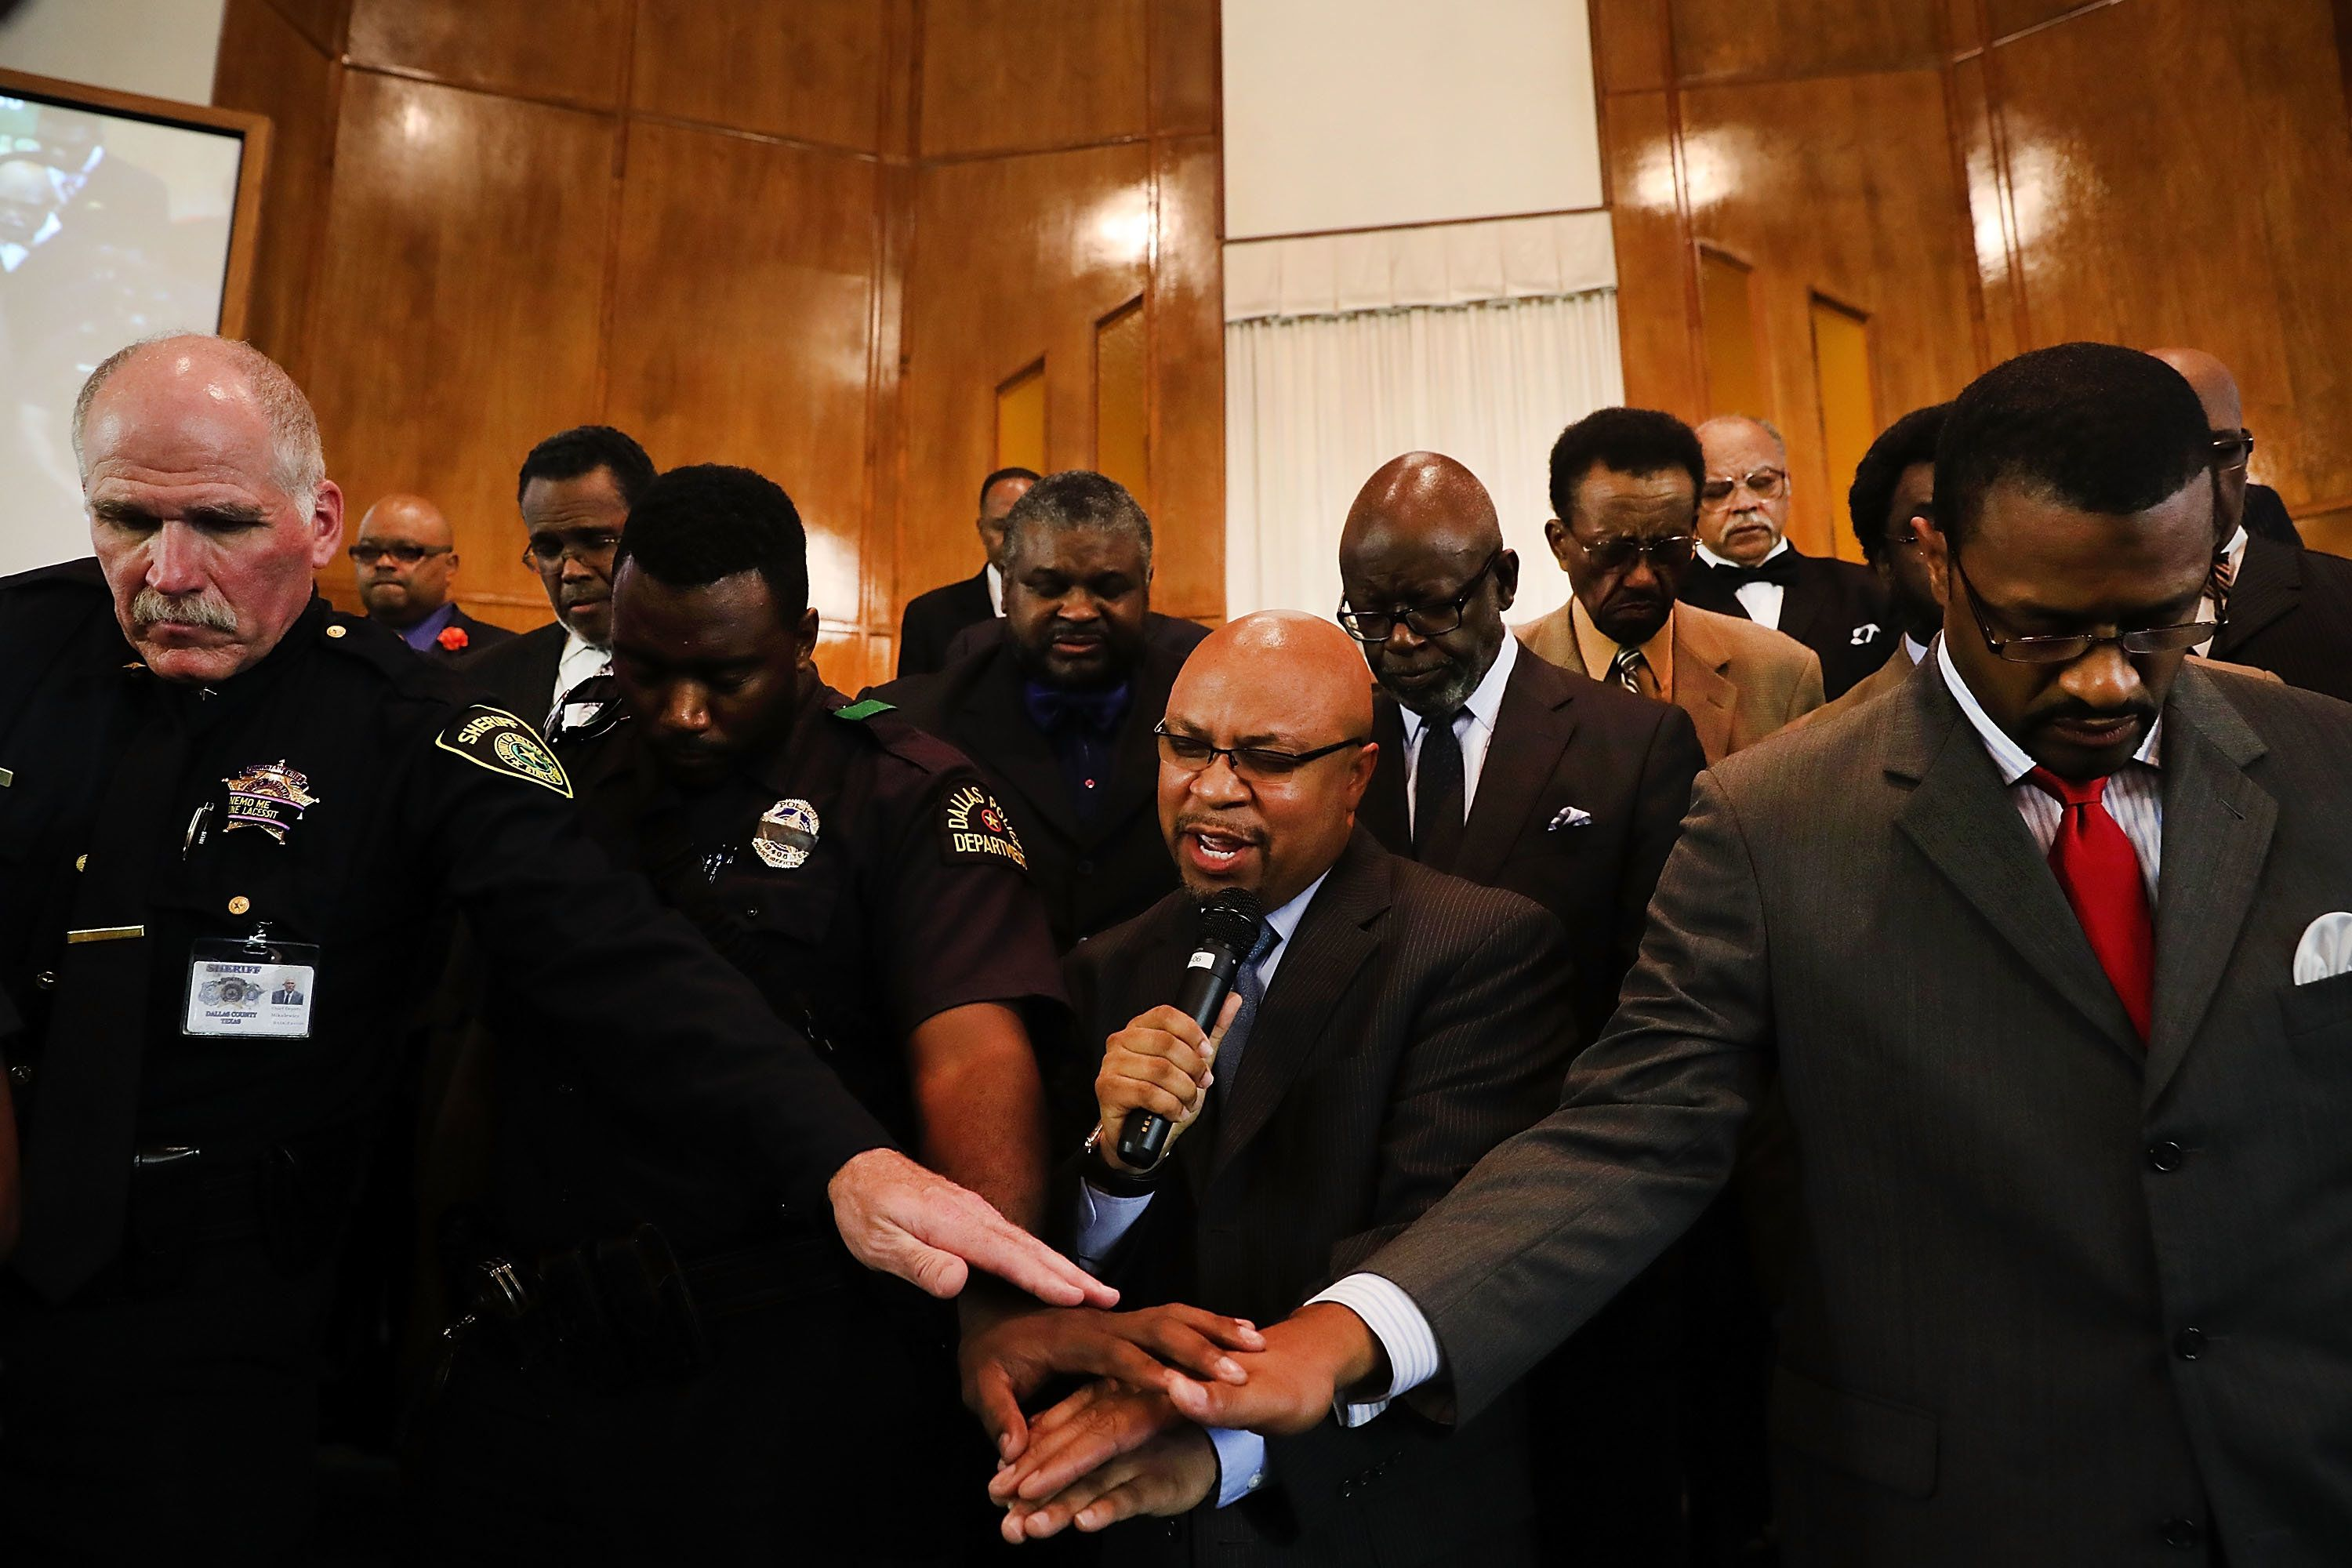 Police officers from area departments in and around Dallas pray with Carl Sherman, a pastor and former mayor of DeSoto, Texas